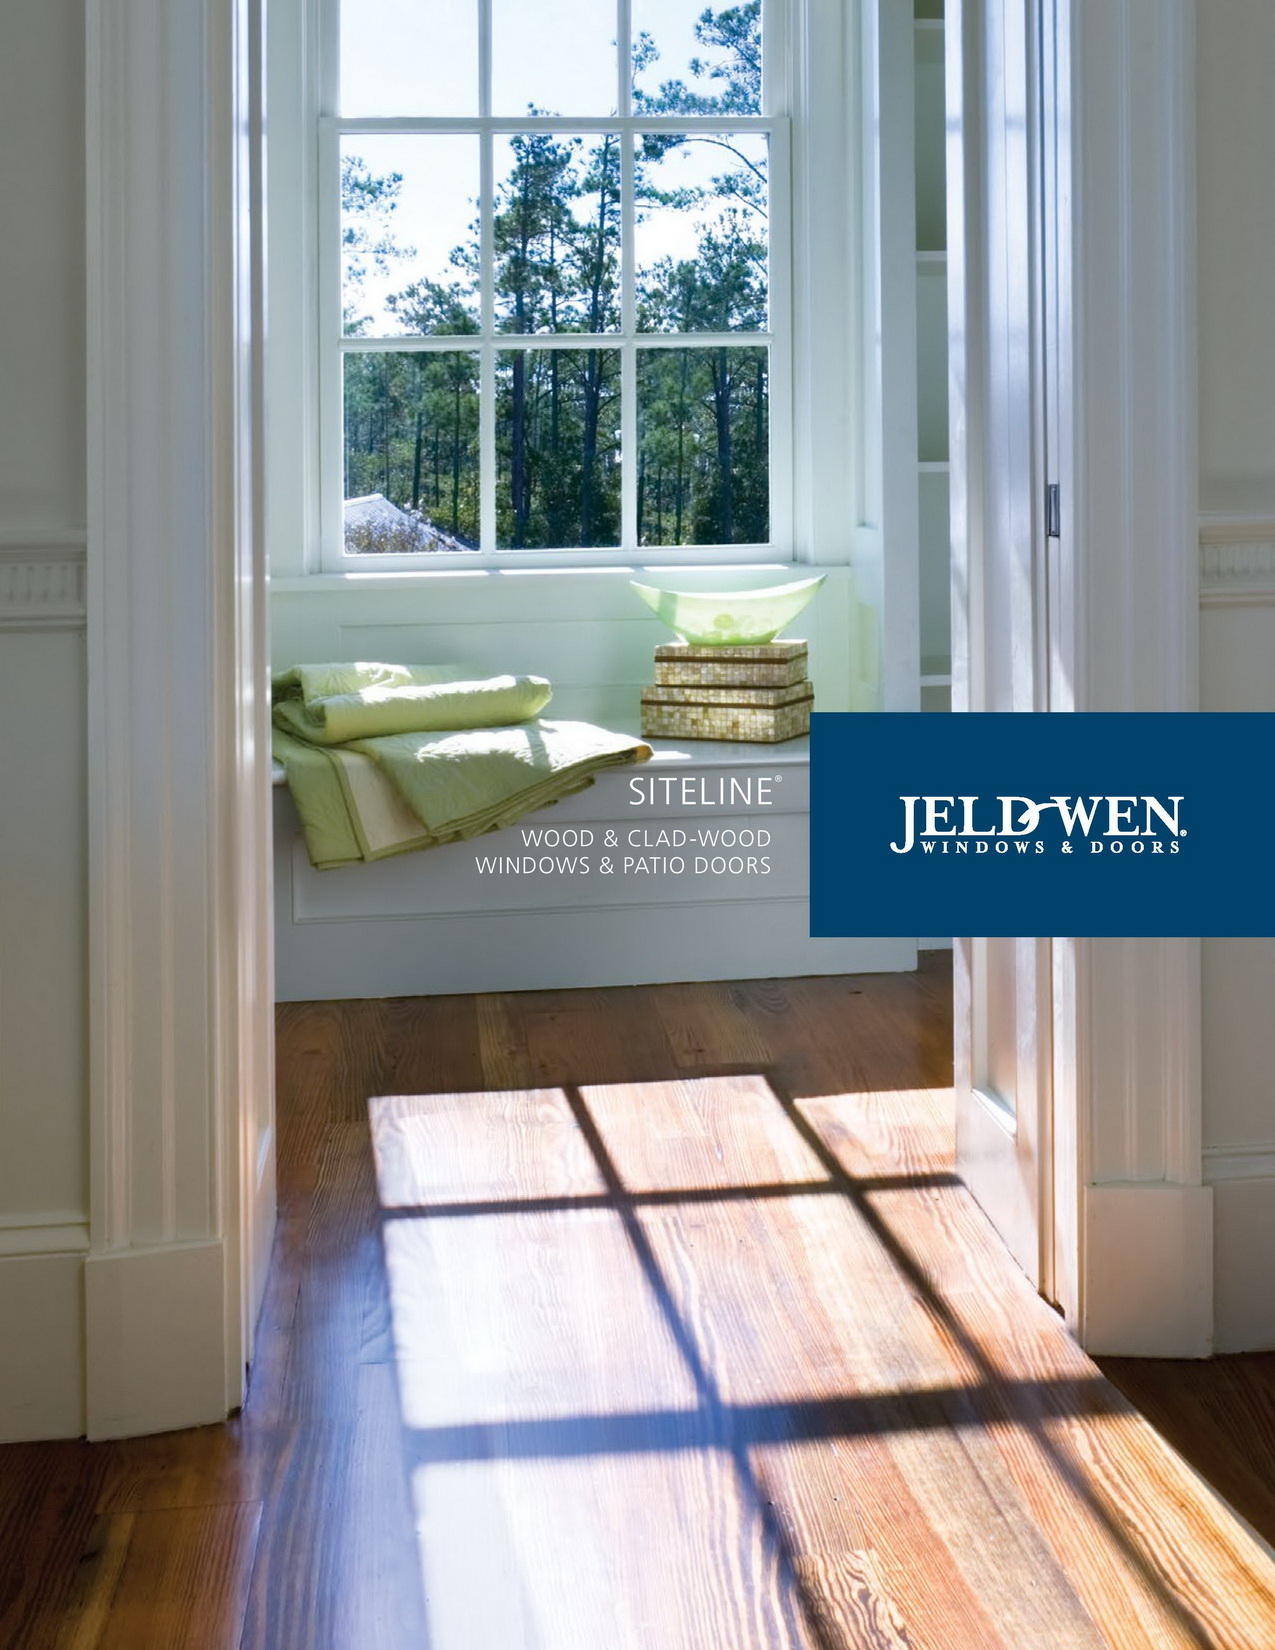 Jeld Wen Siteline Windows and Patio Doors